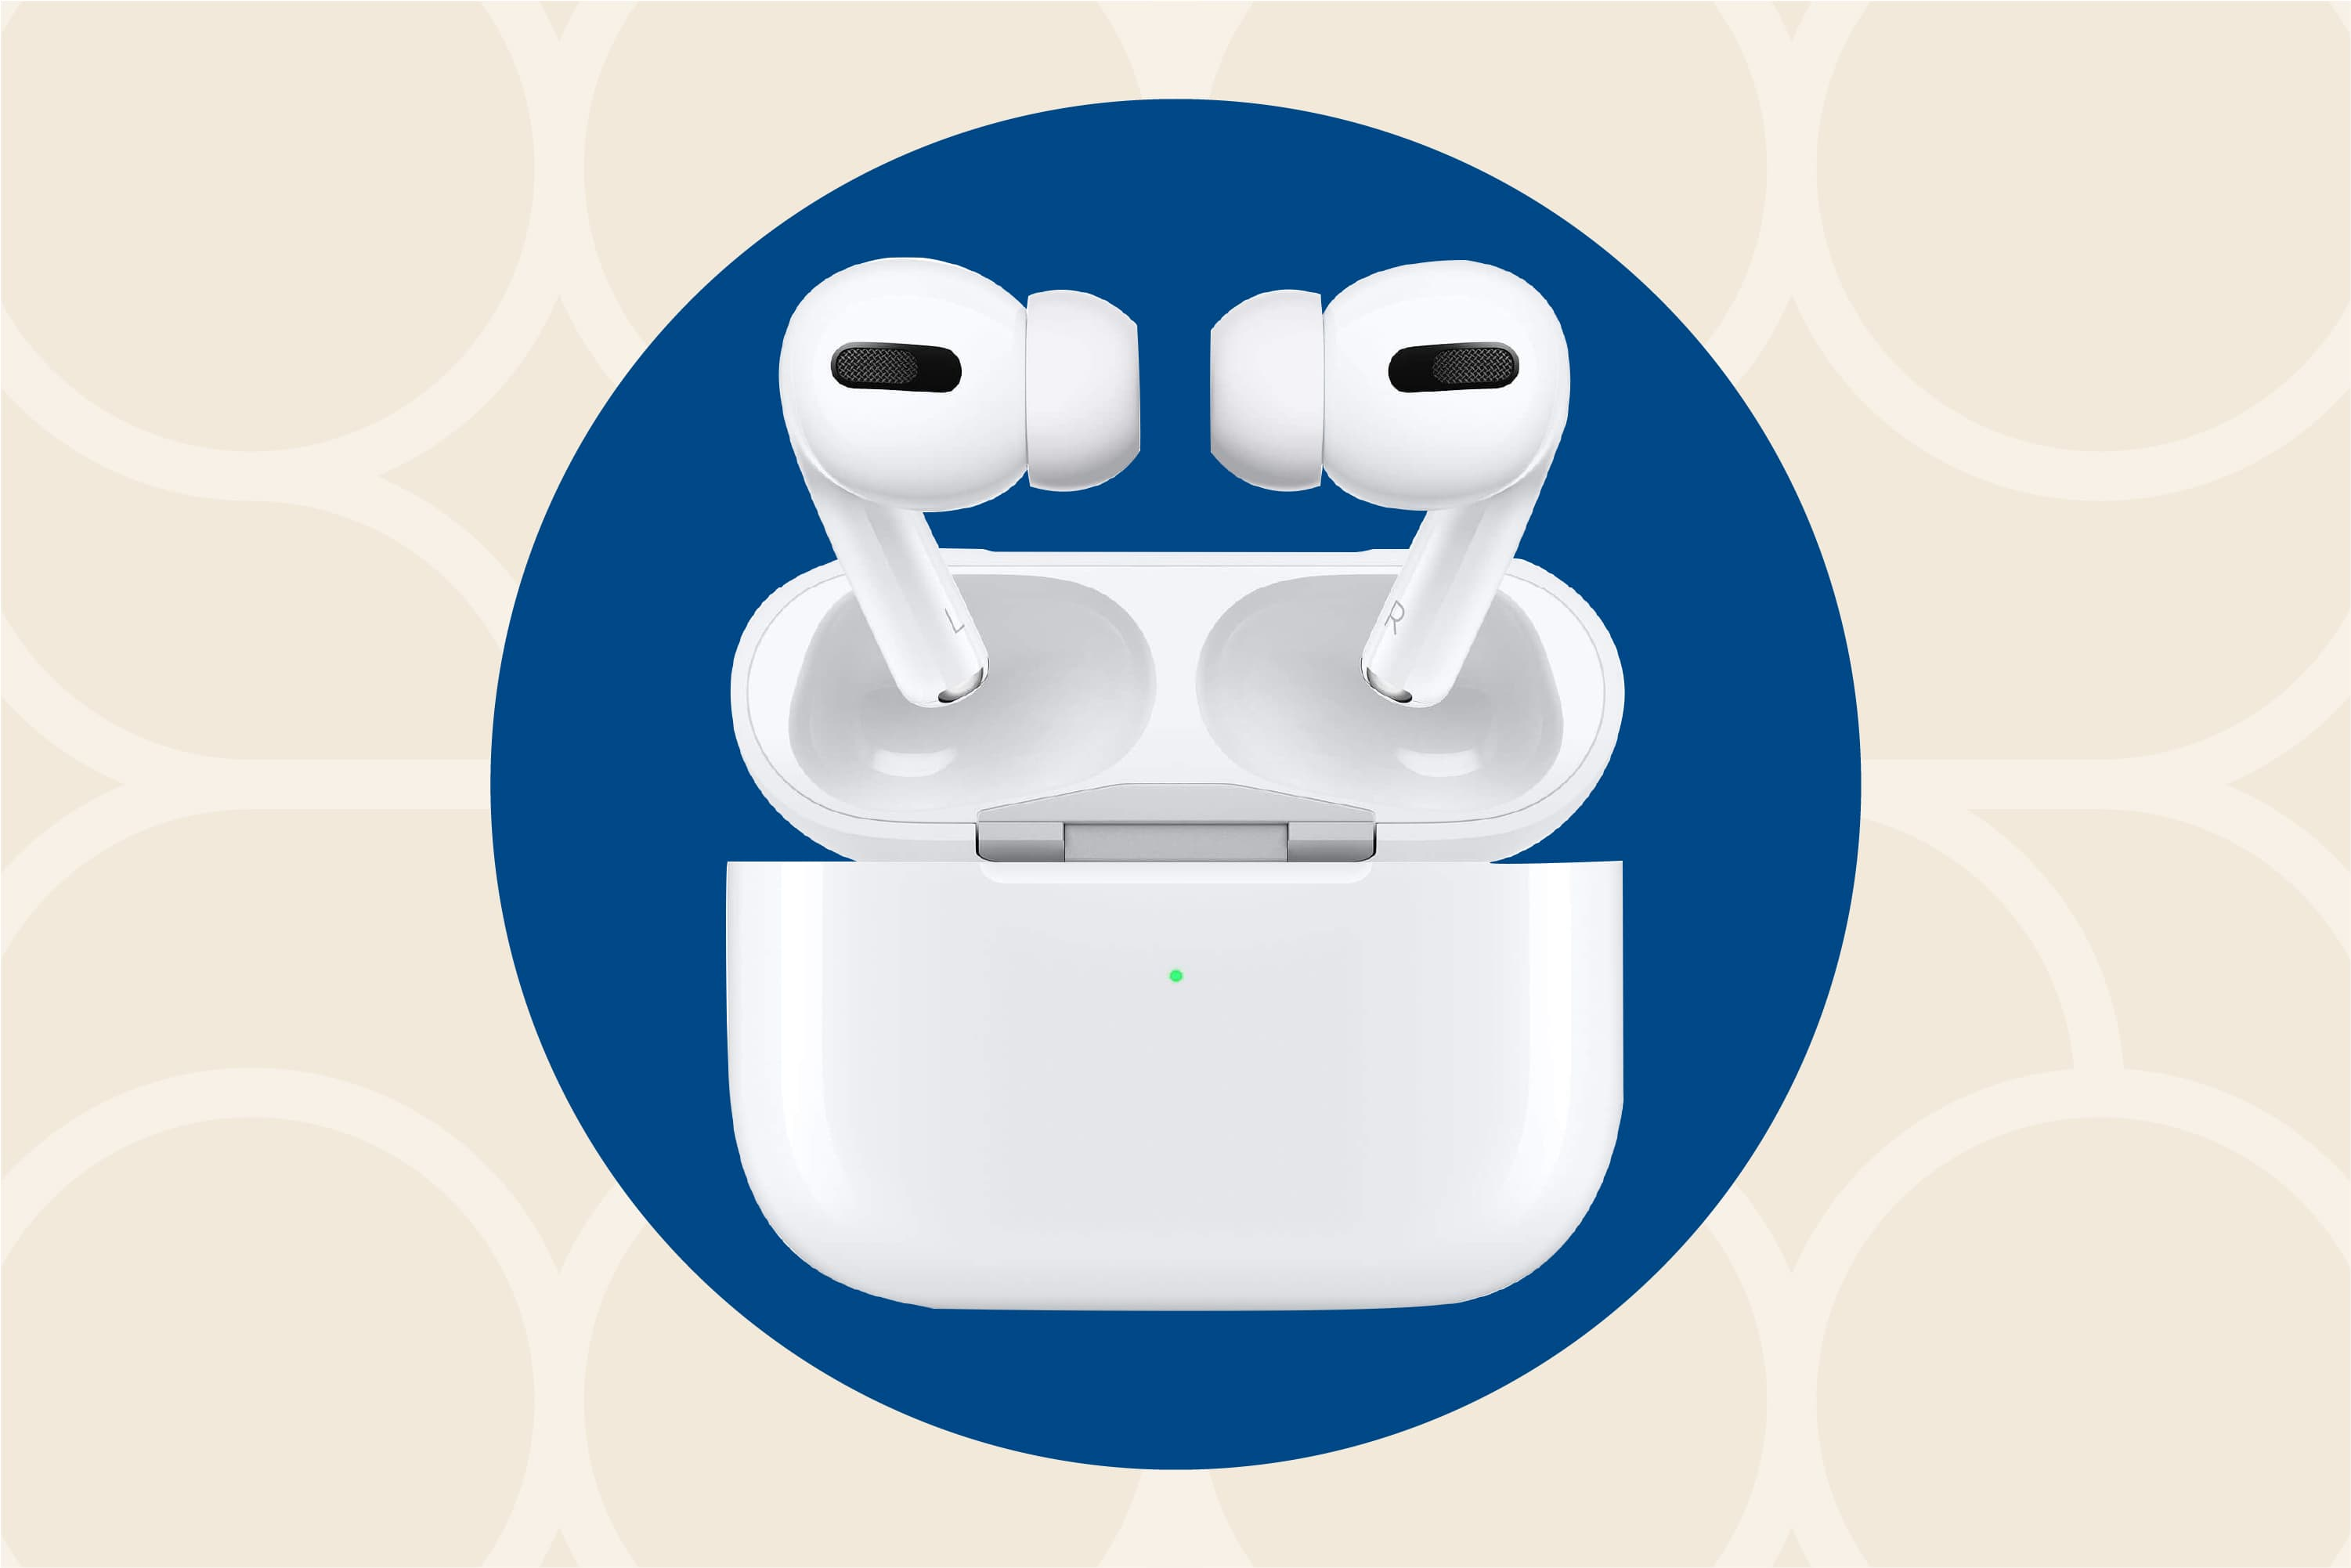 airpods-pro-2-specs-price-and-release-date-leaked-20201022-2